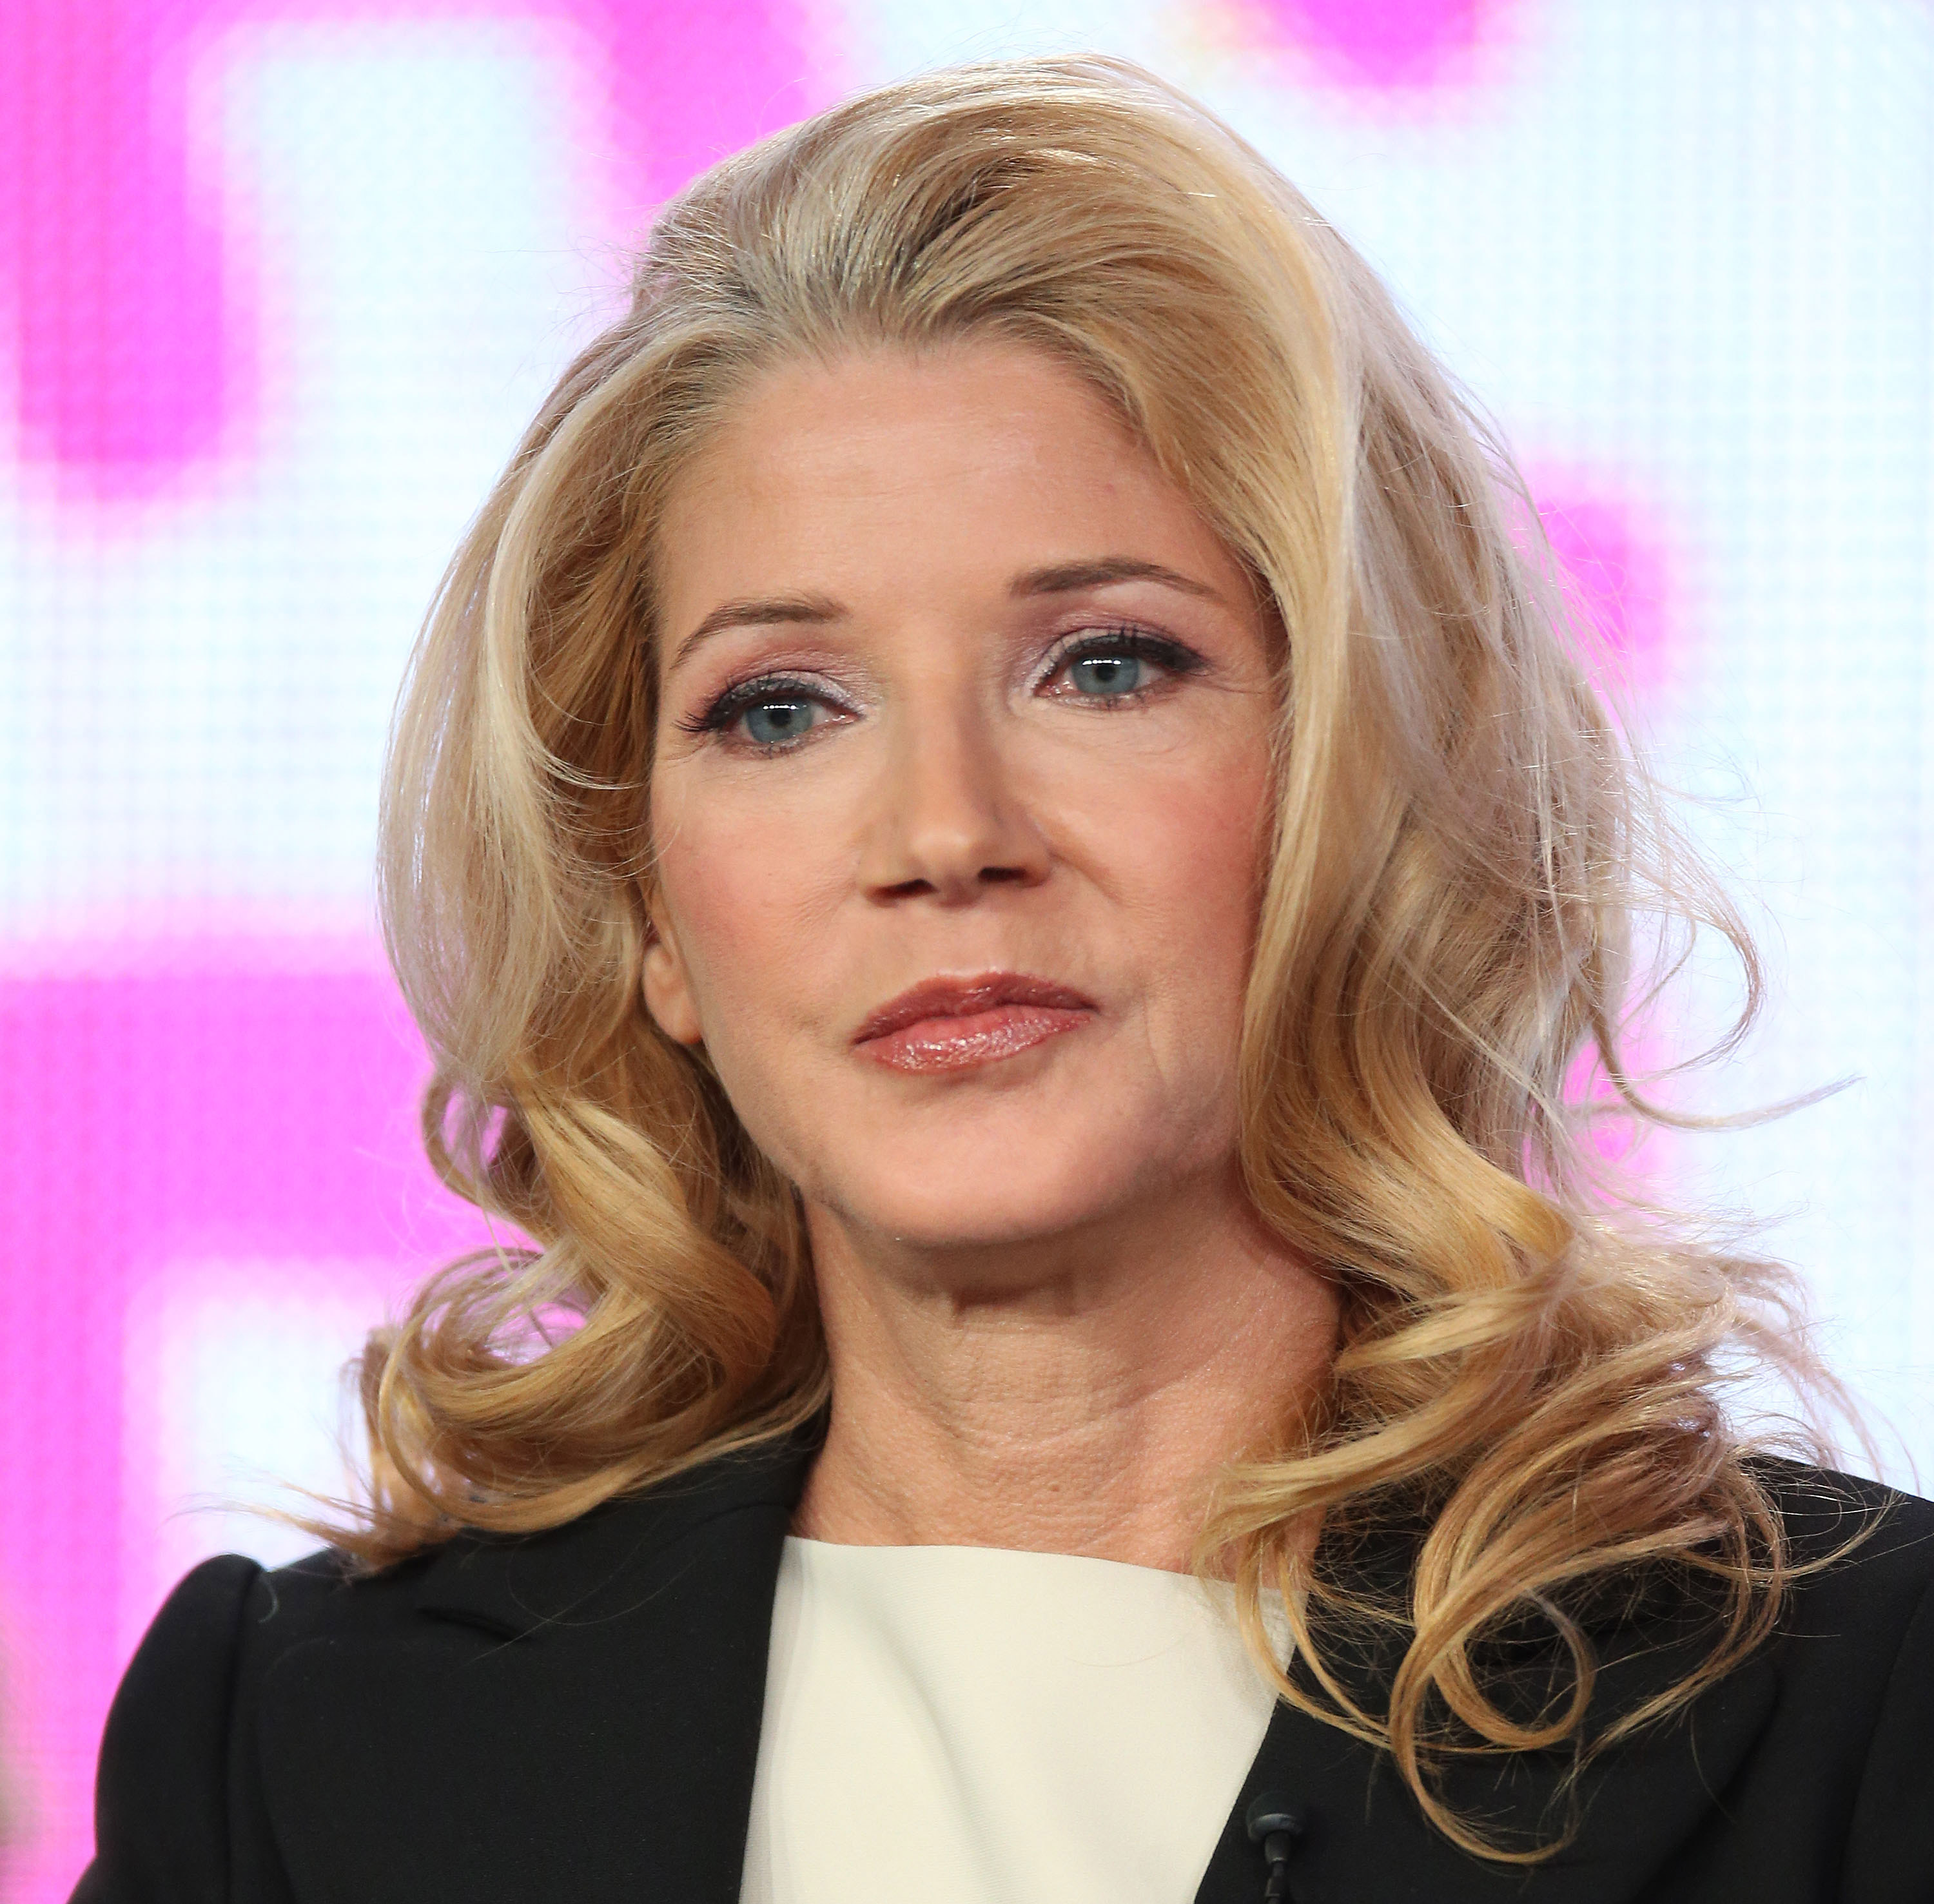 Candace Bushnell Biography, Candace Bushnell's Famous